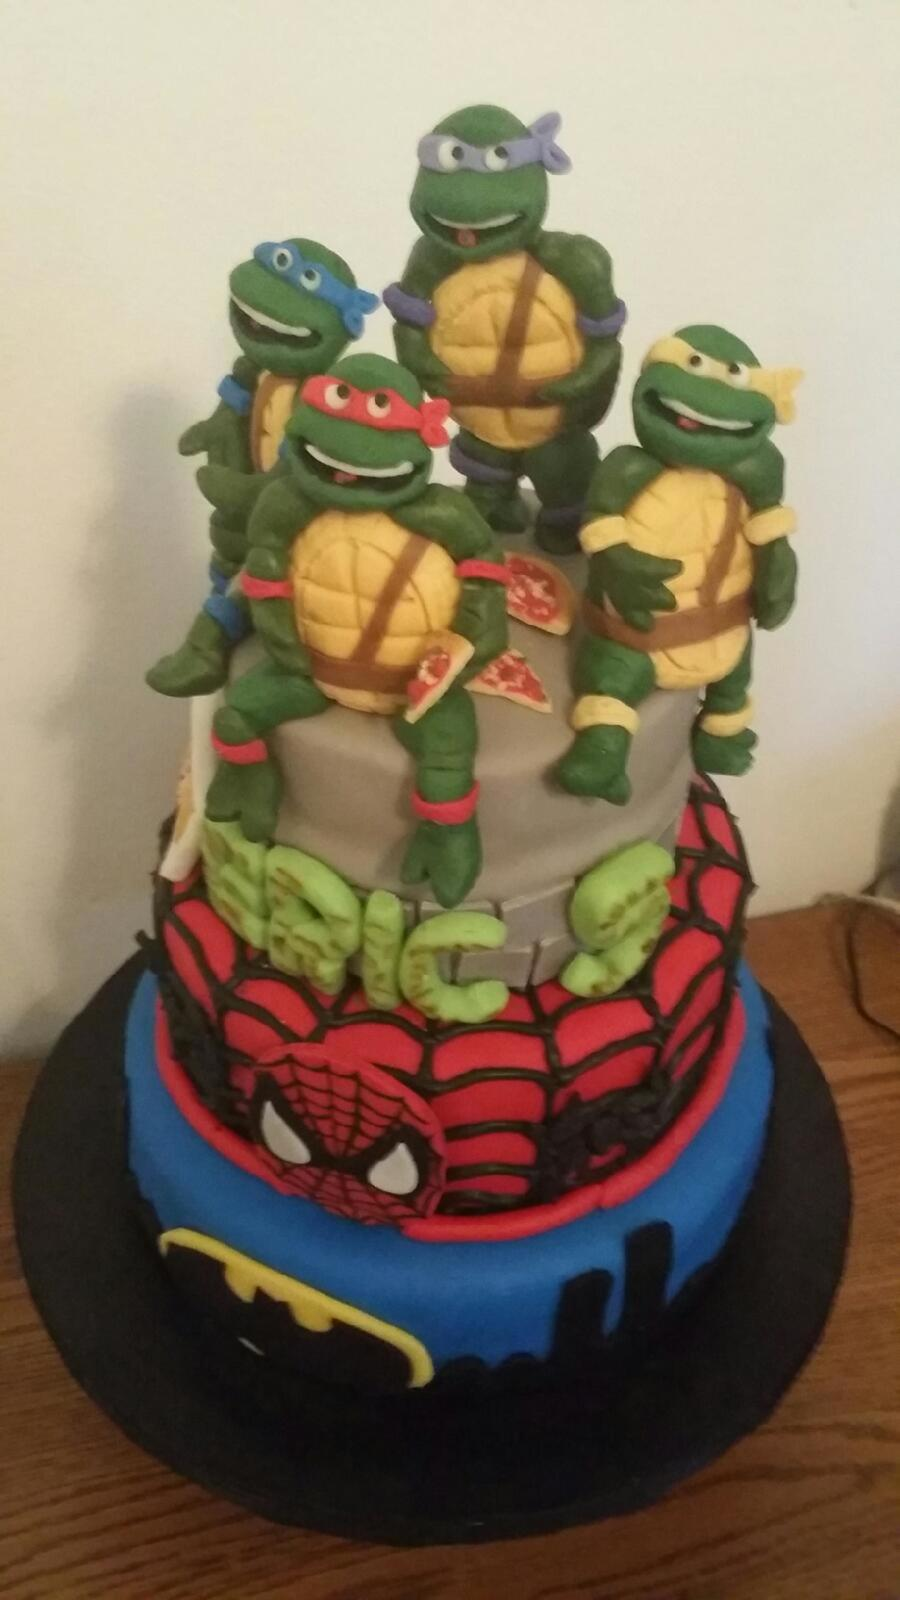 Superhero Cake With Ninja Turtles Spiderman And Batman